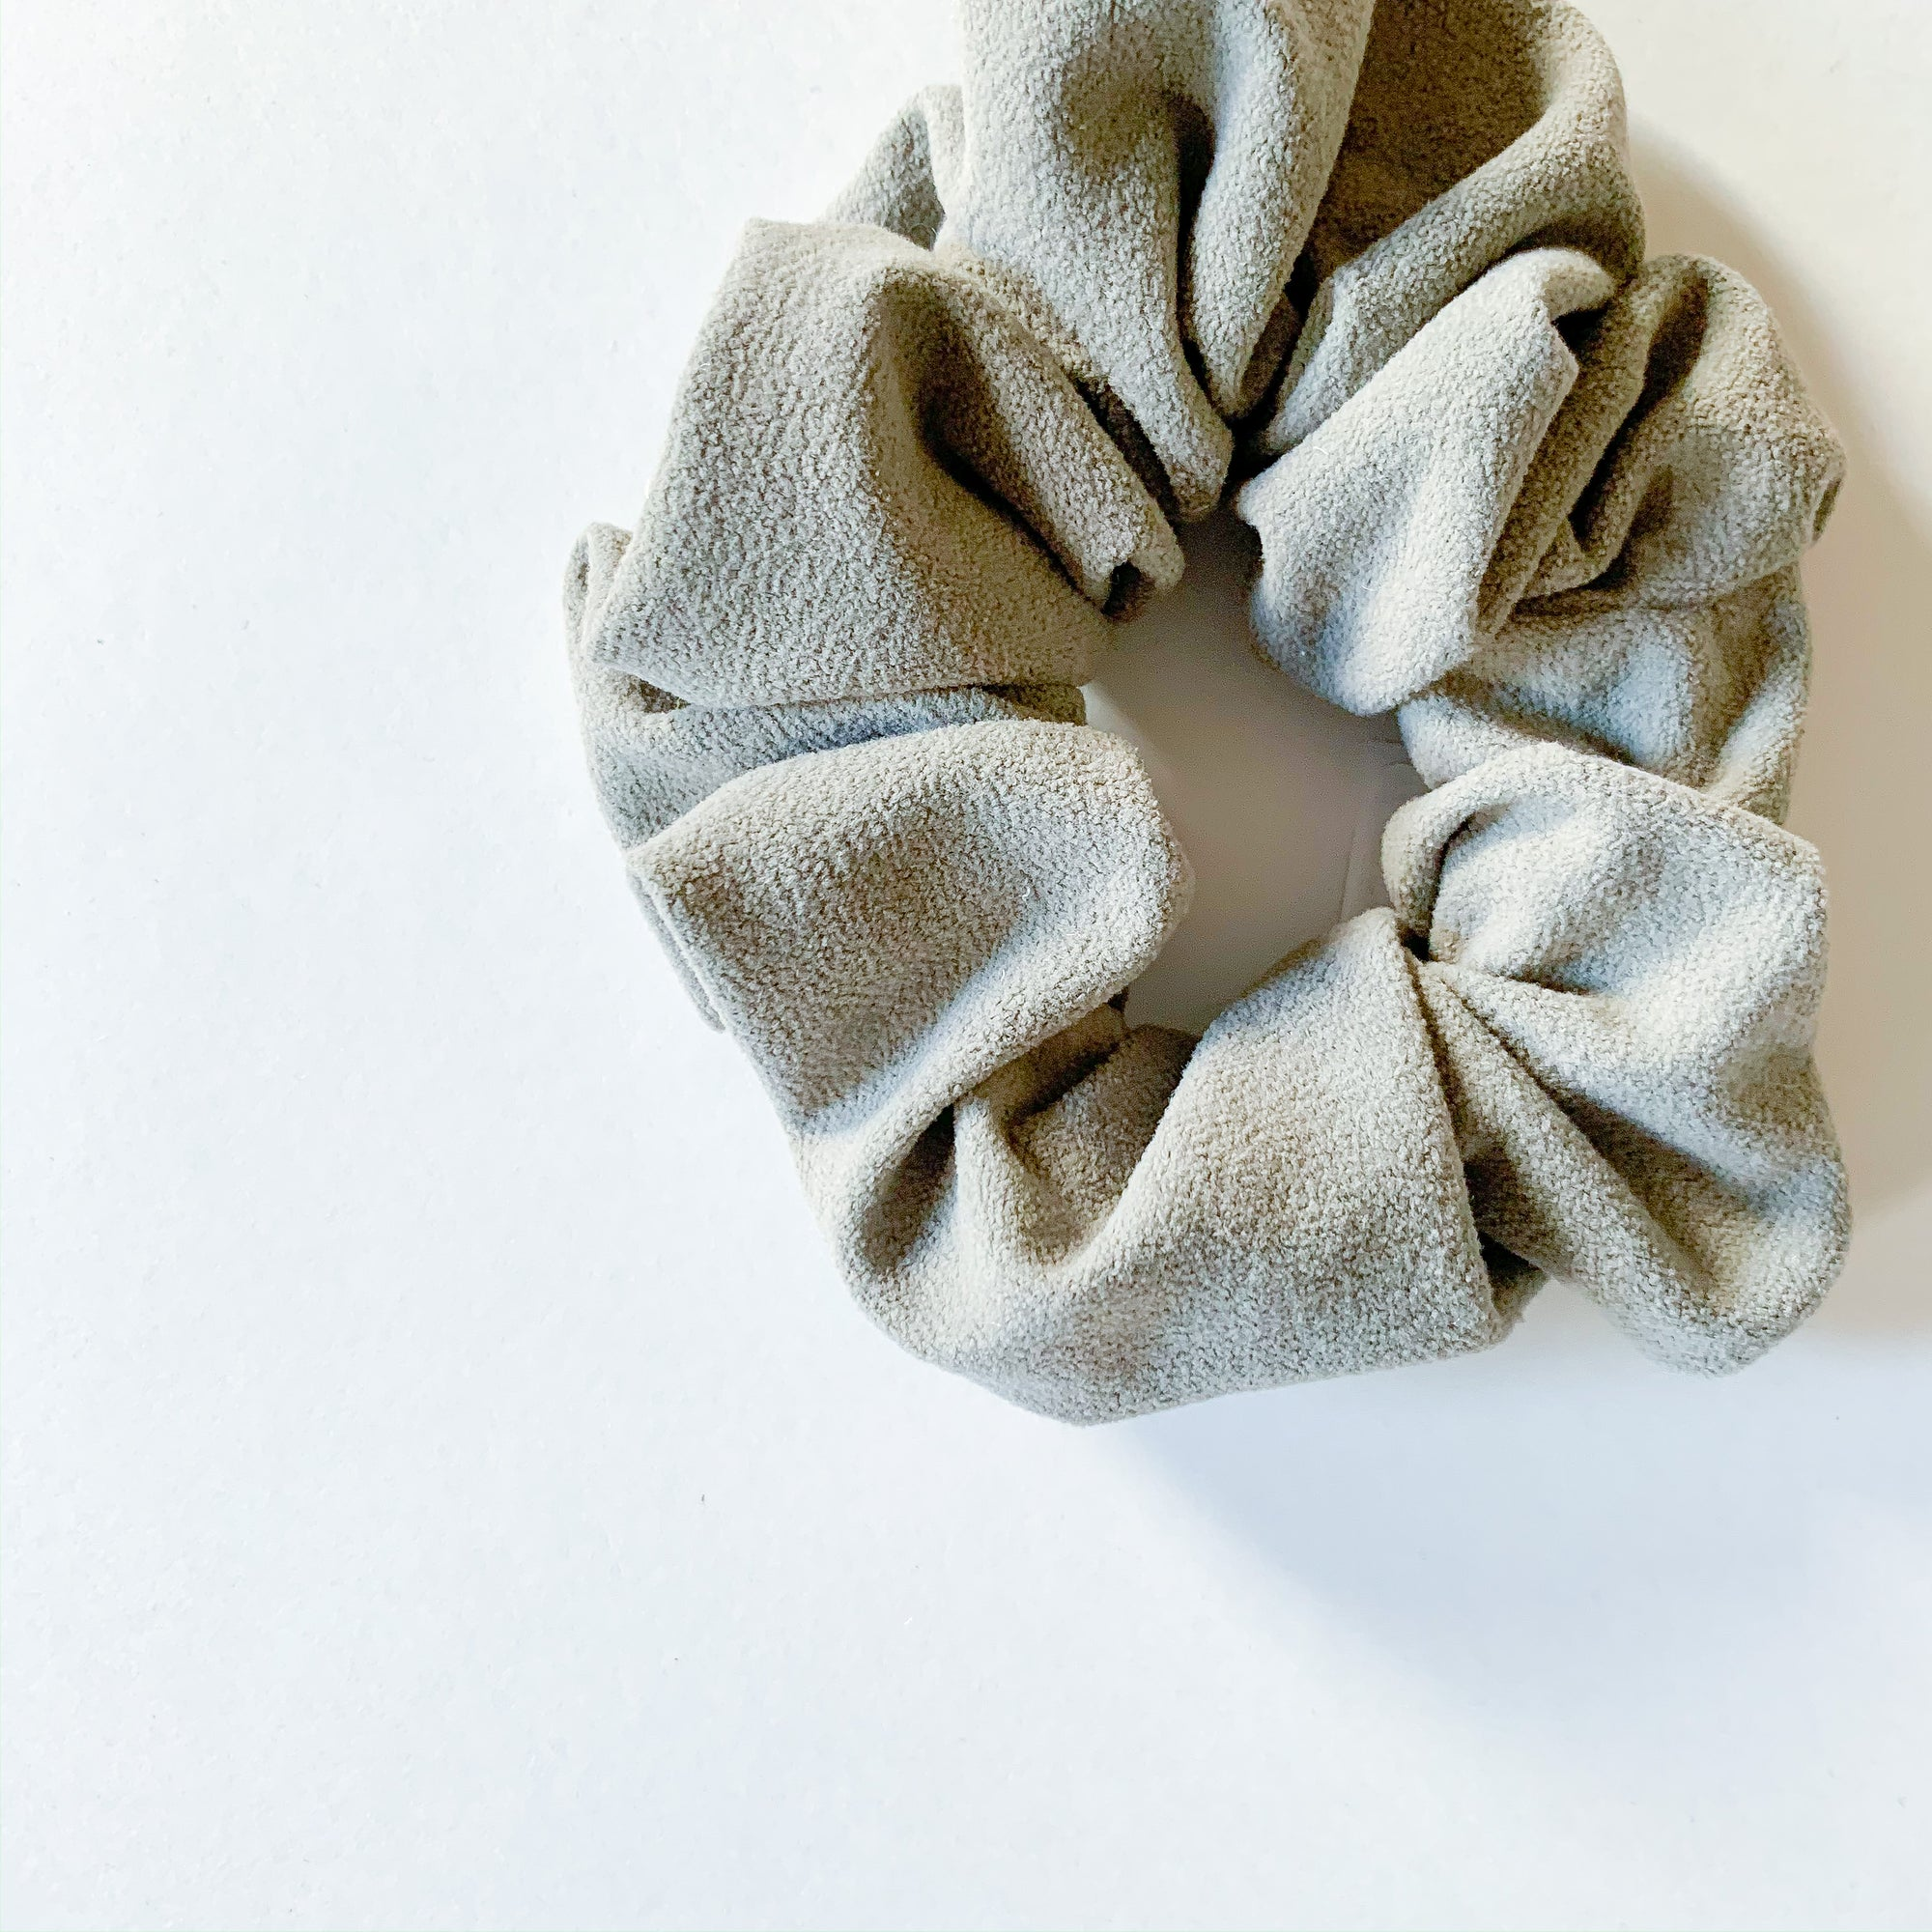 Hair Scrunchie - Taupe - Femme Wares Niagara Local Small Business